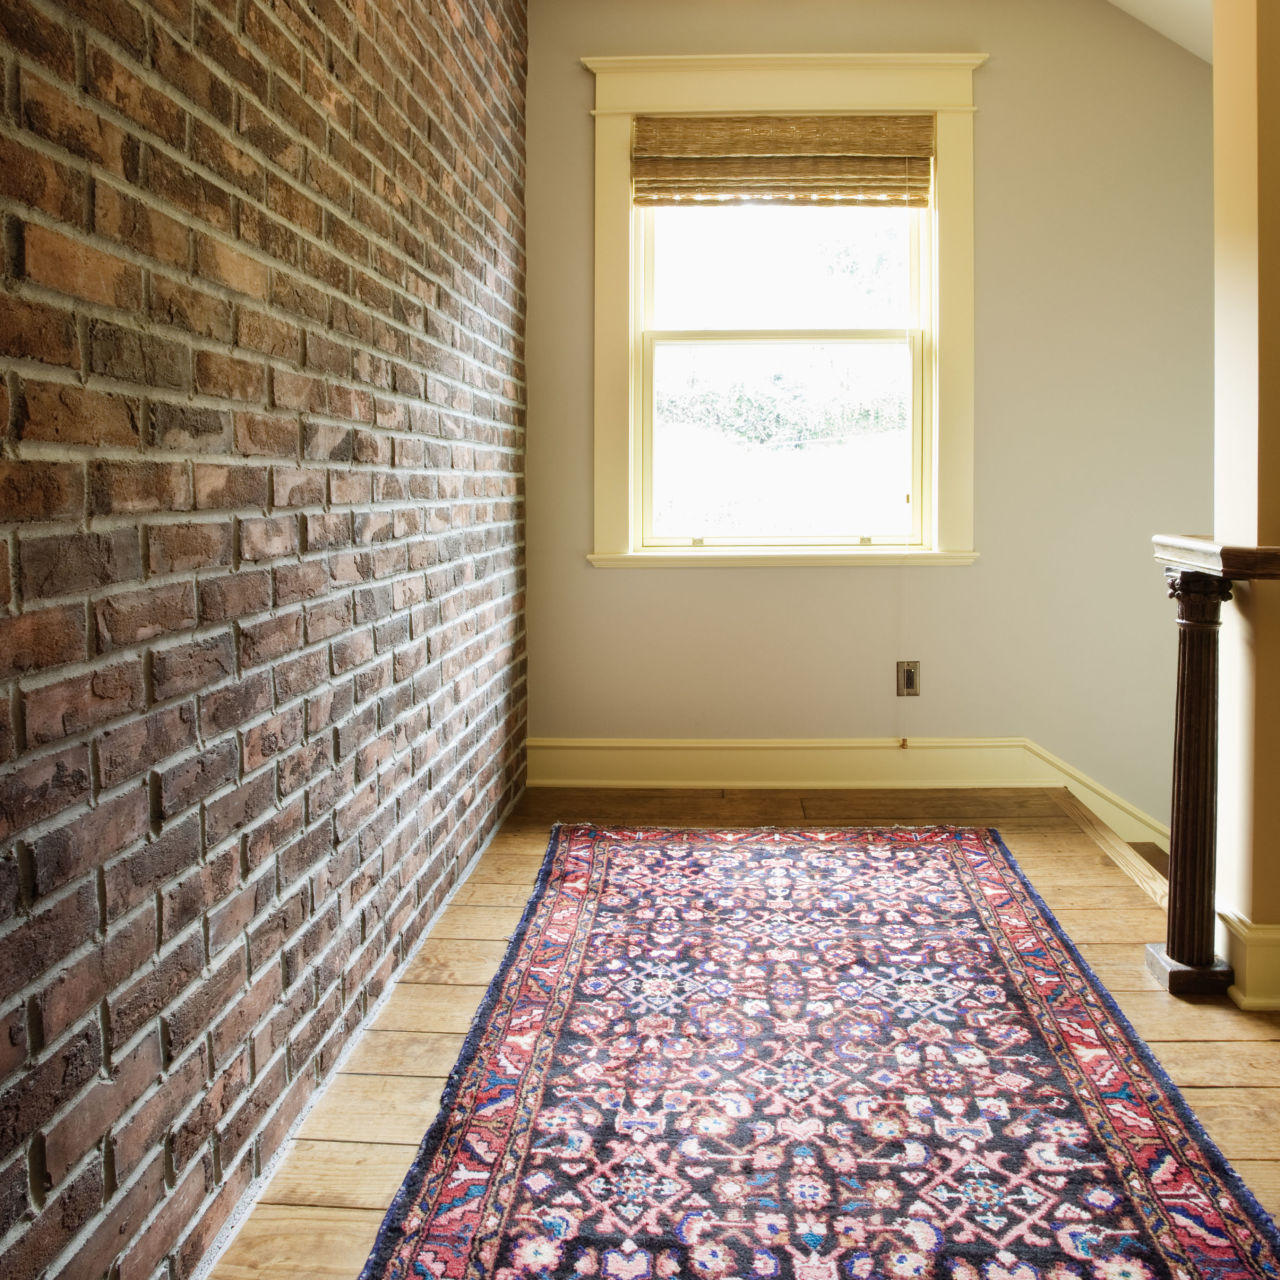 http://hbu.h-cdn.co/assets/15/34/1280x1280/gallery-1440199396-exposed-brick-2-de.jpg